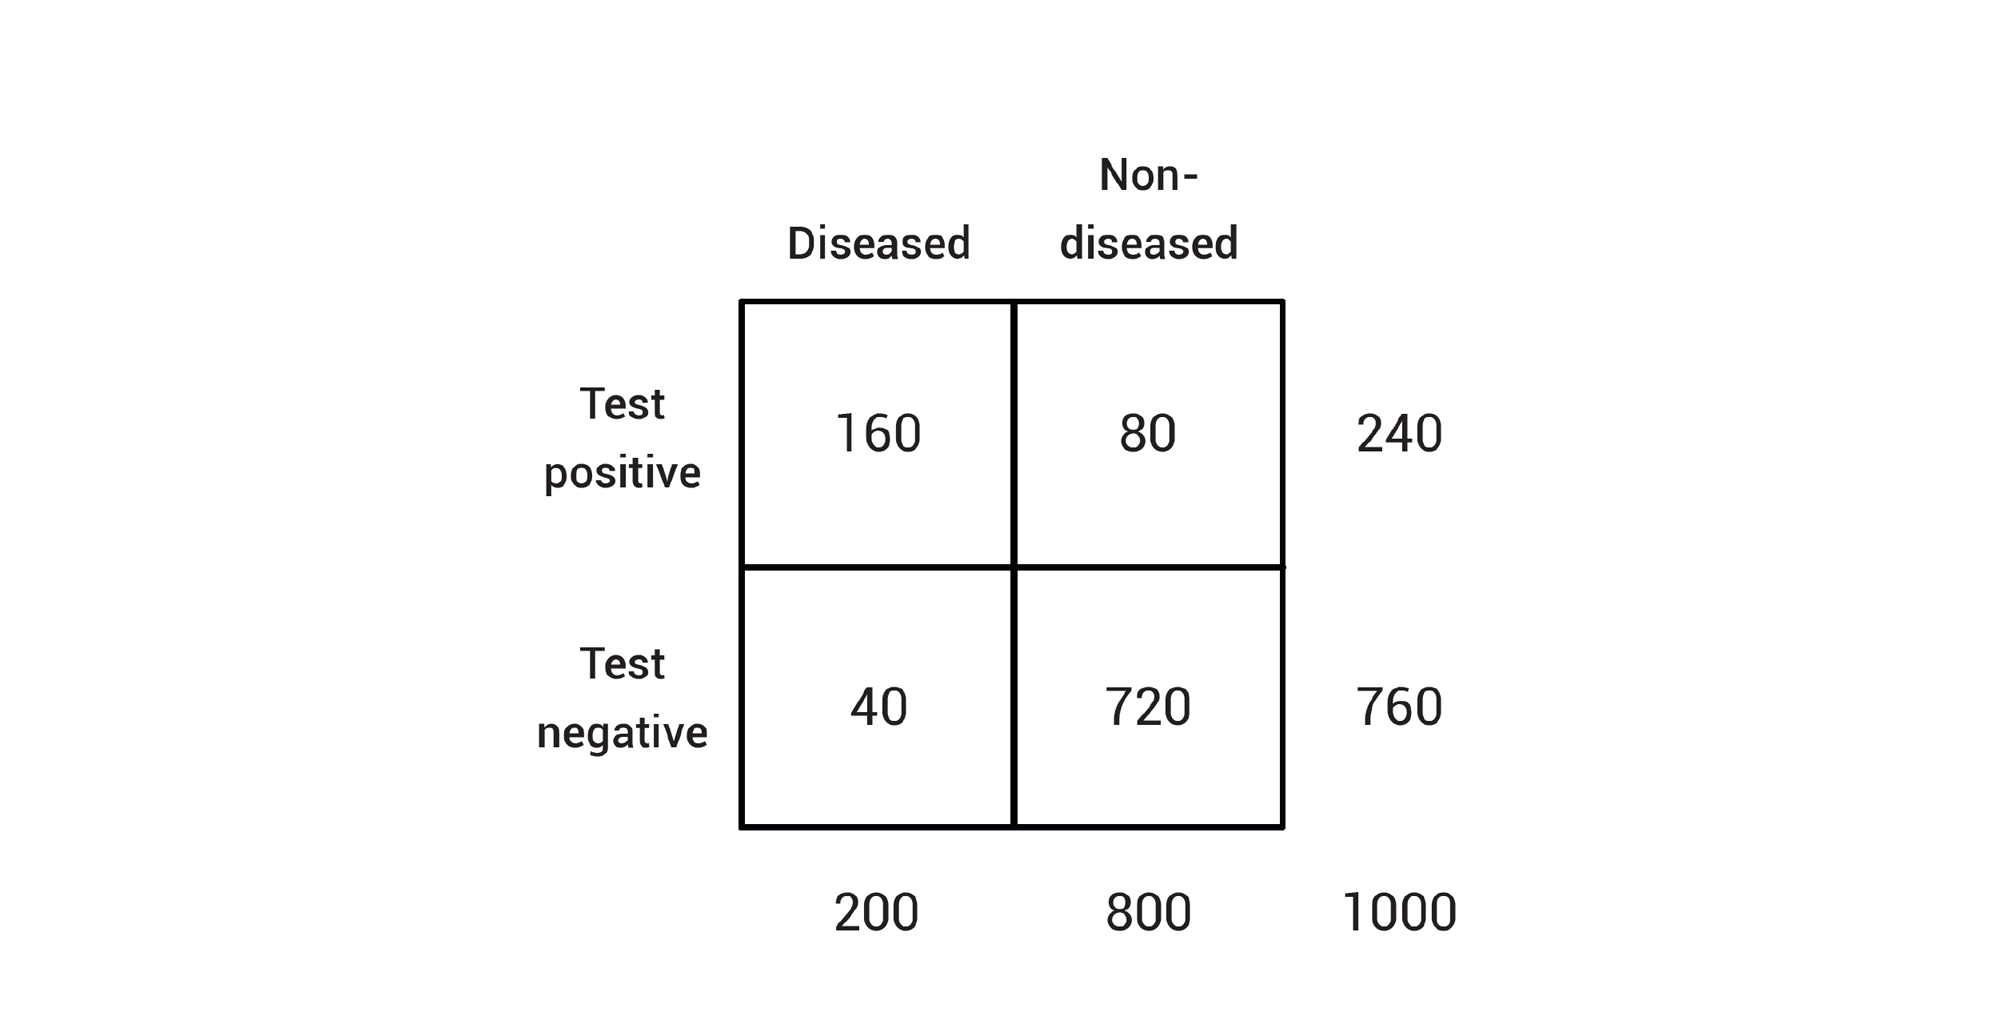 Example showing number of true and false positives and true and false negatives.